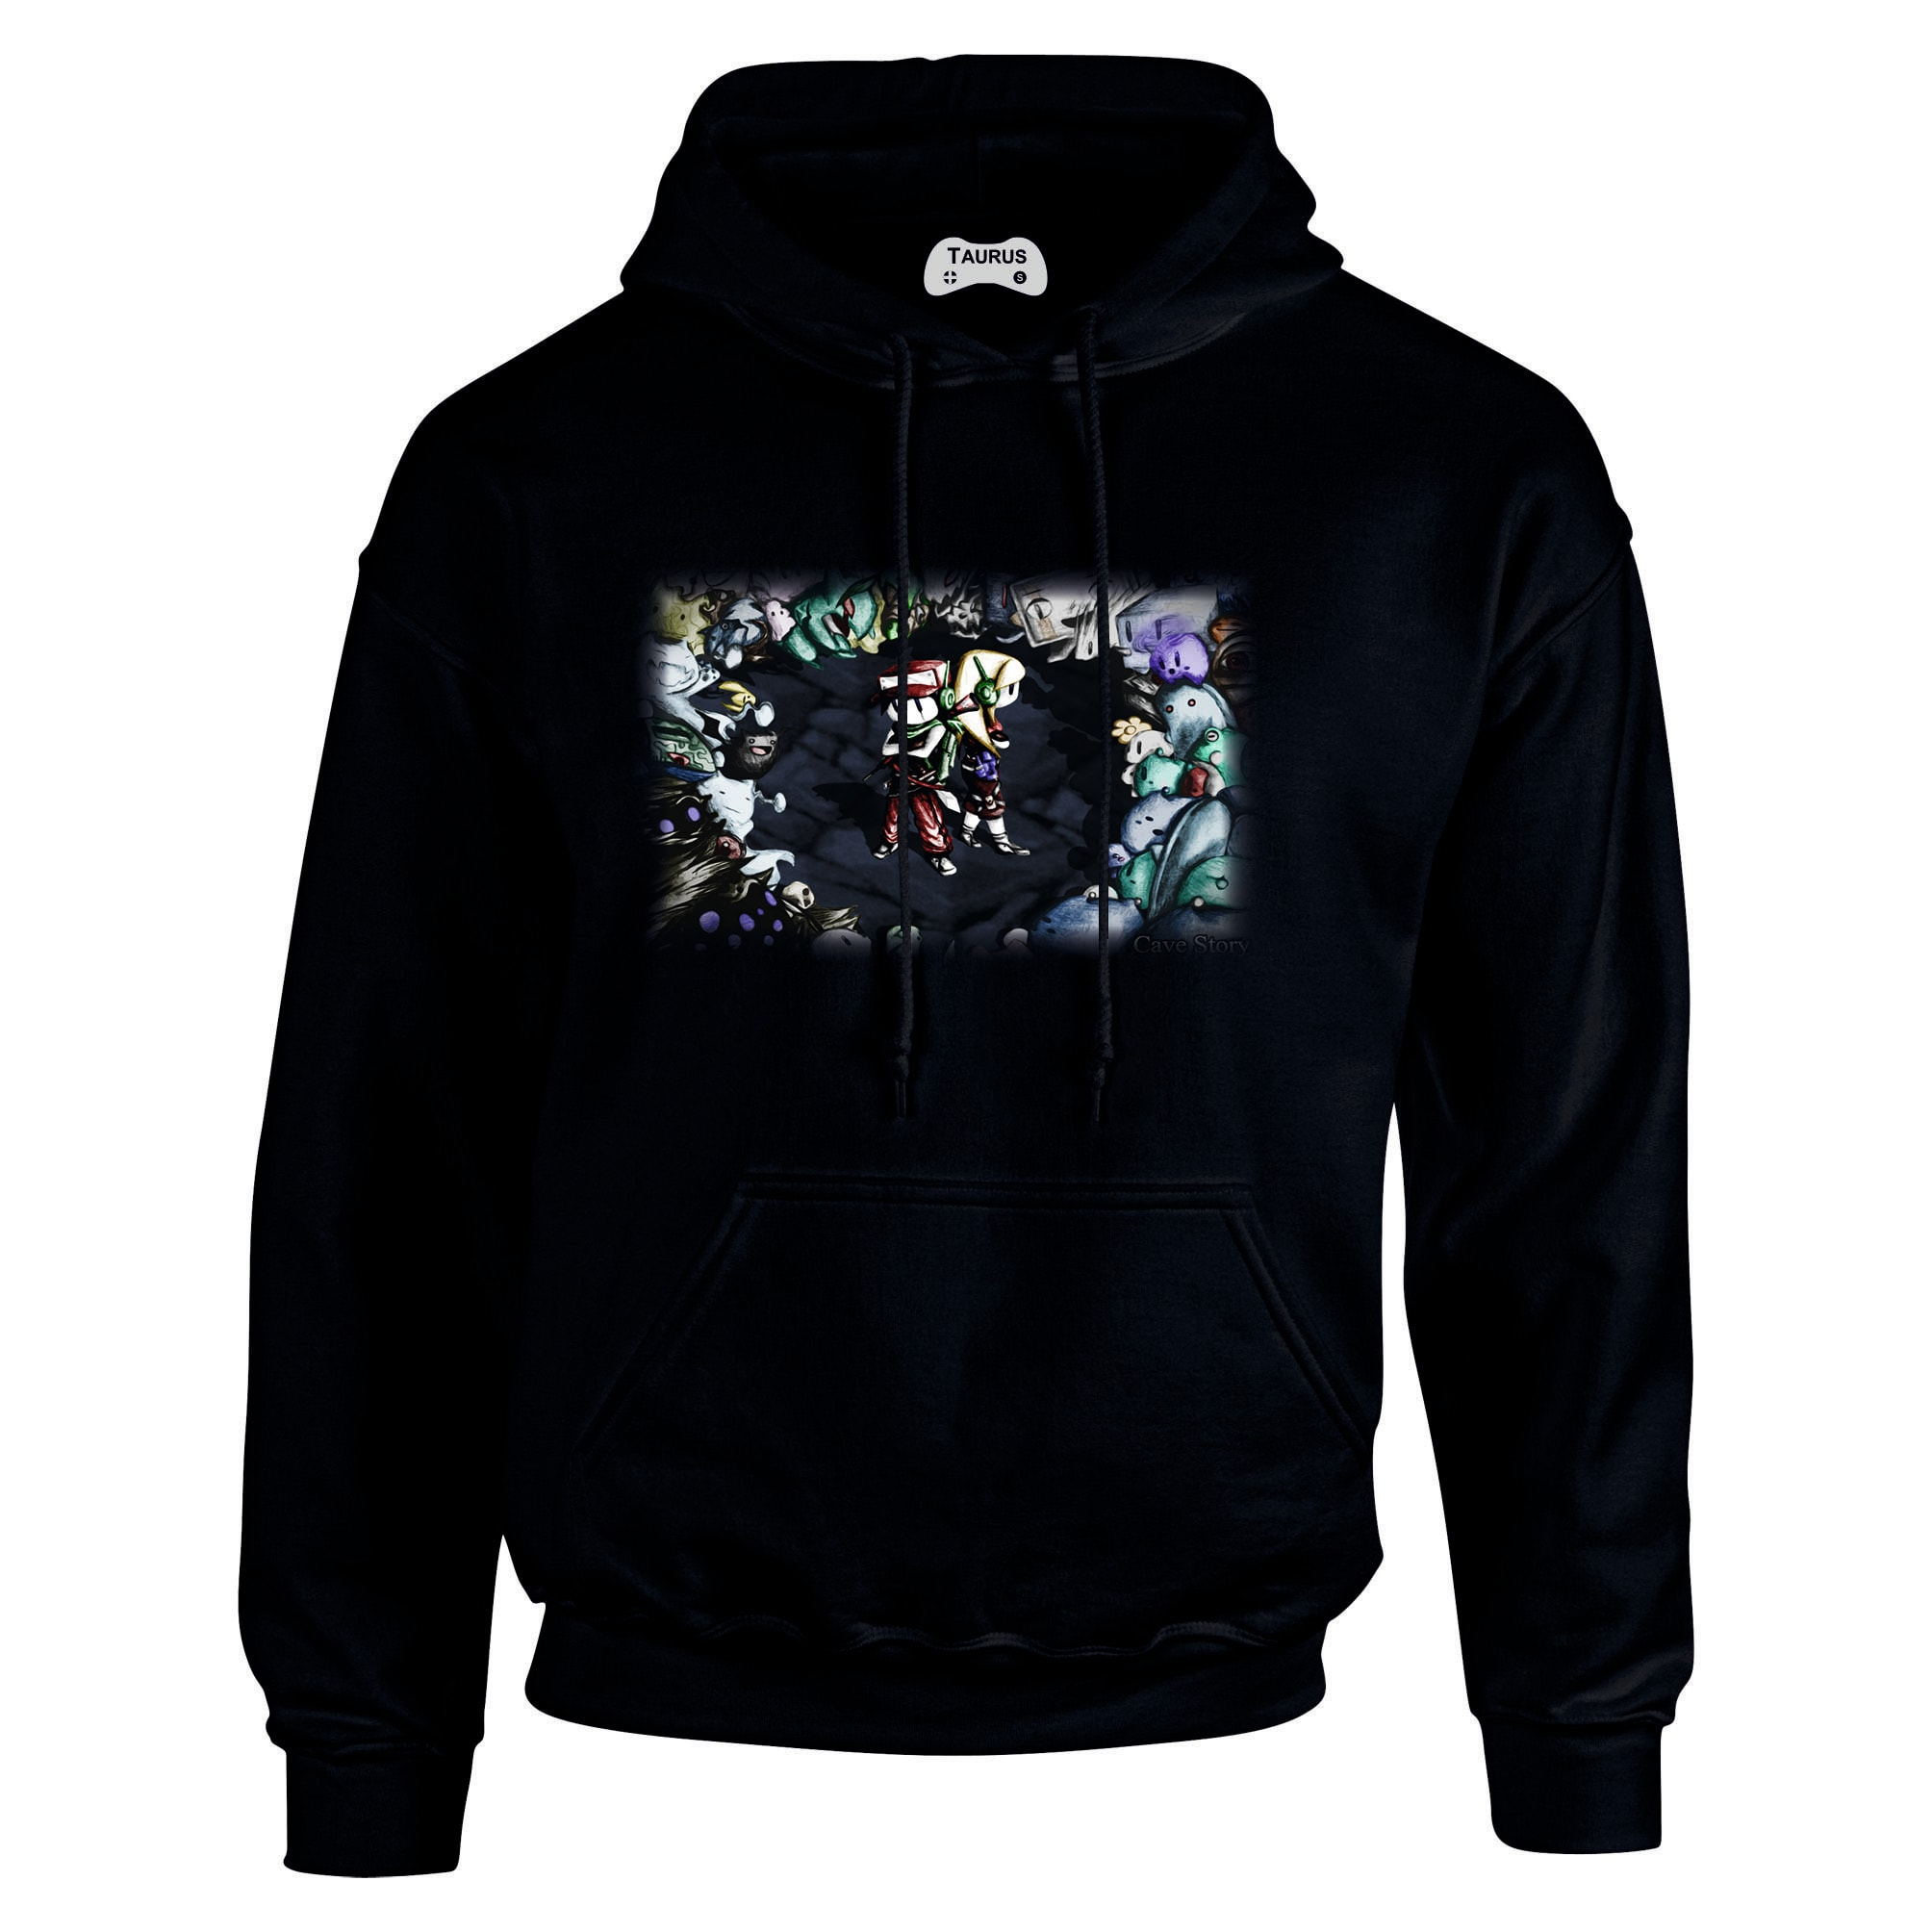 Cave Story Hoodie Quote